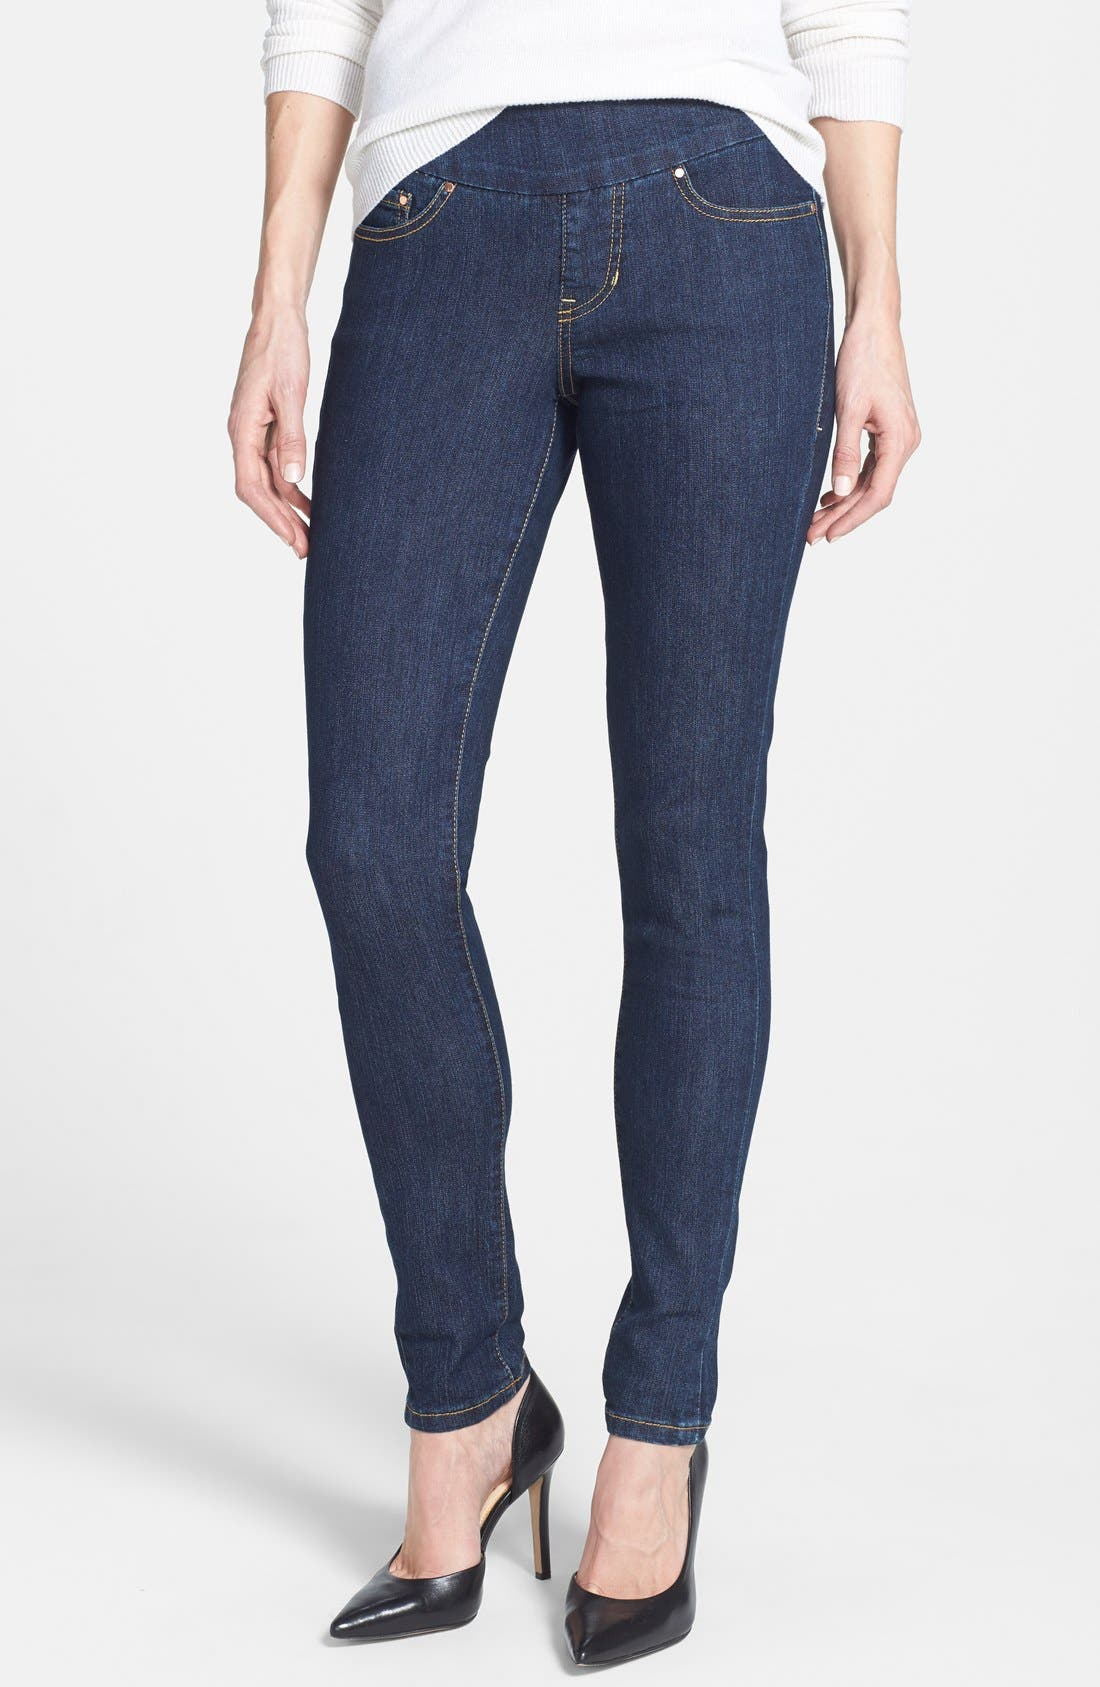 Main Image - Jag Jeans 'Nora' Pull On Stretch Skinny Jeans